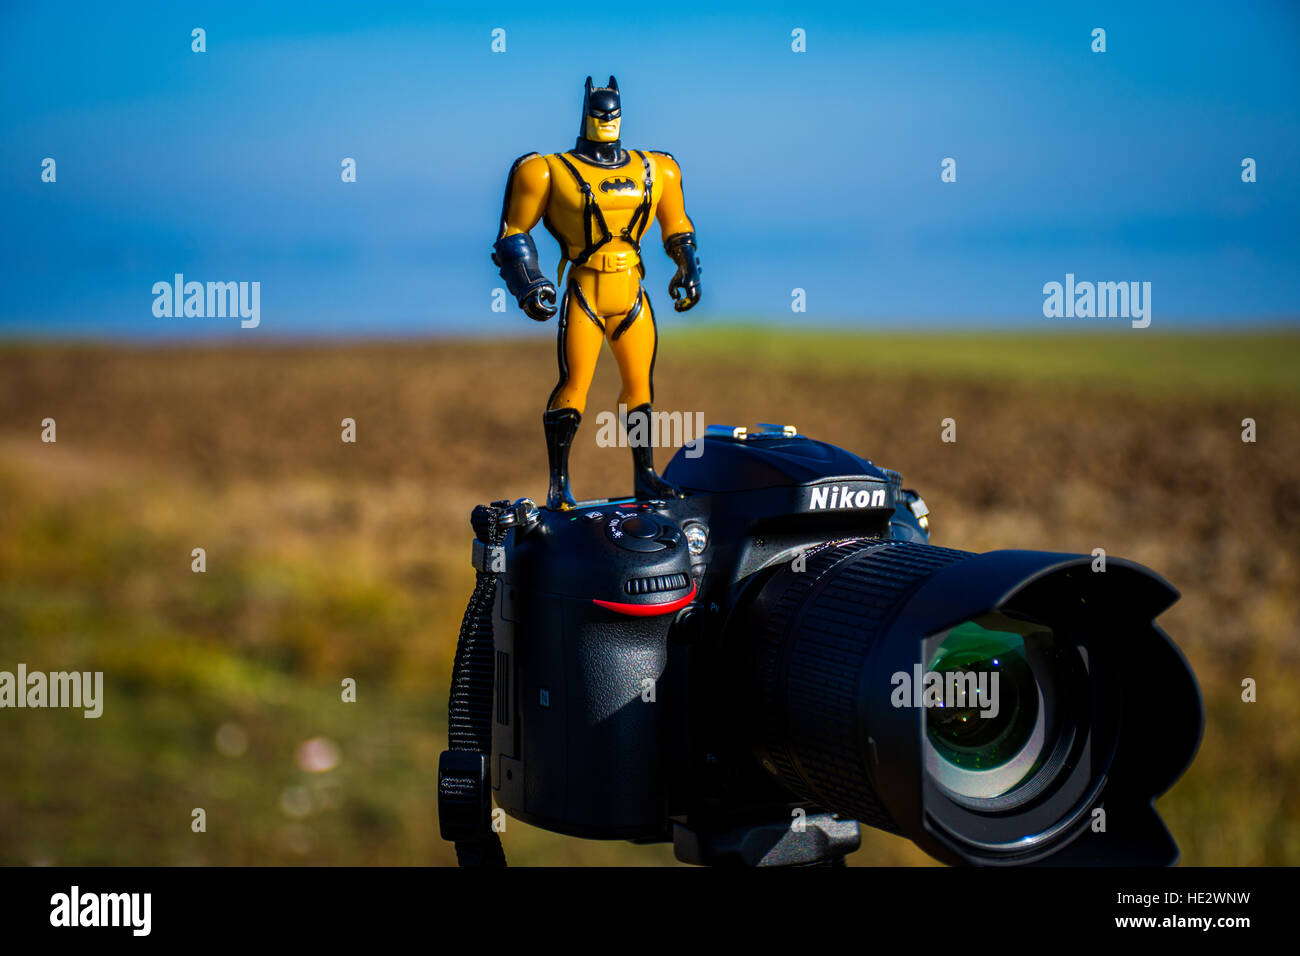 Batman in a yellow suit standing on a Nikon DSLR Camera - Stock Image